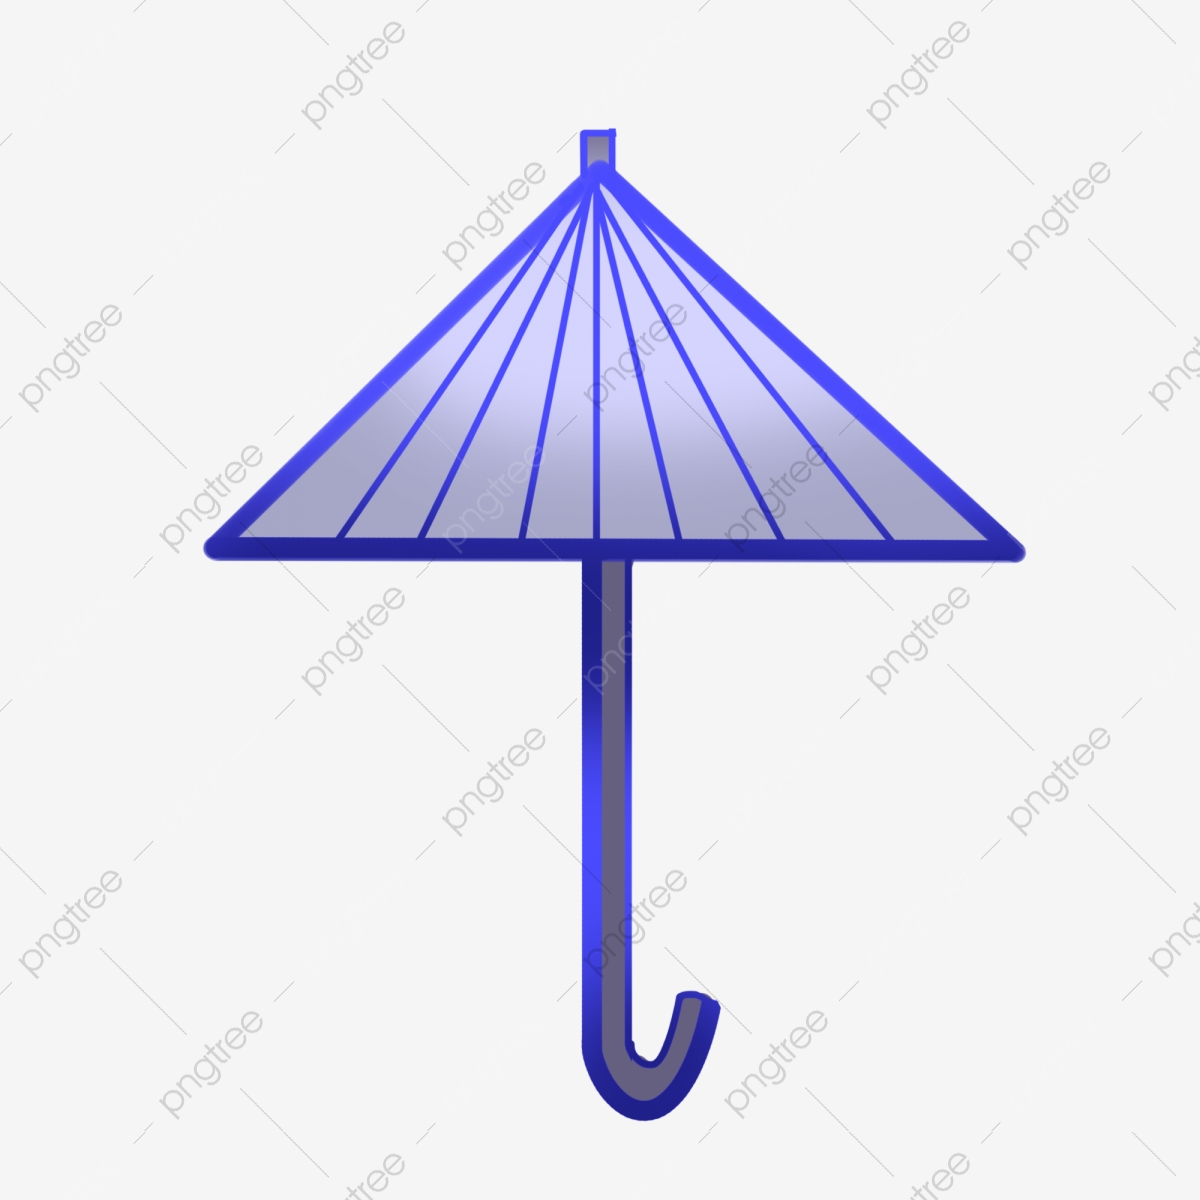 Triangle hand drawn illustration. Clipart umbrella triangular